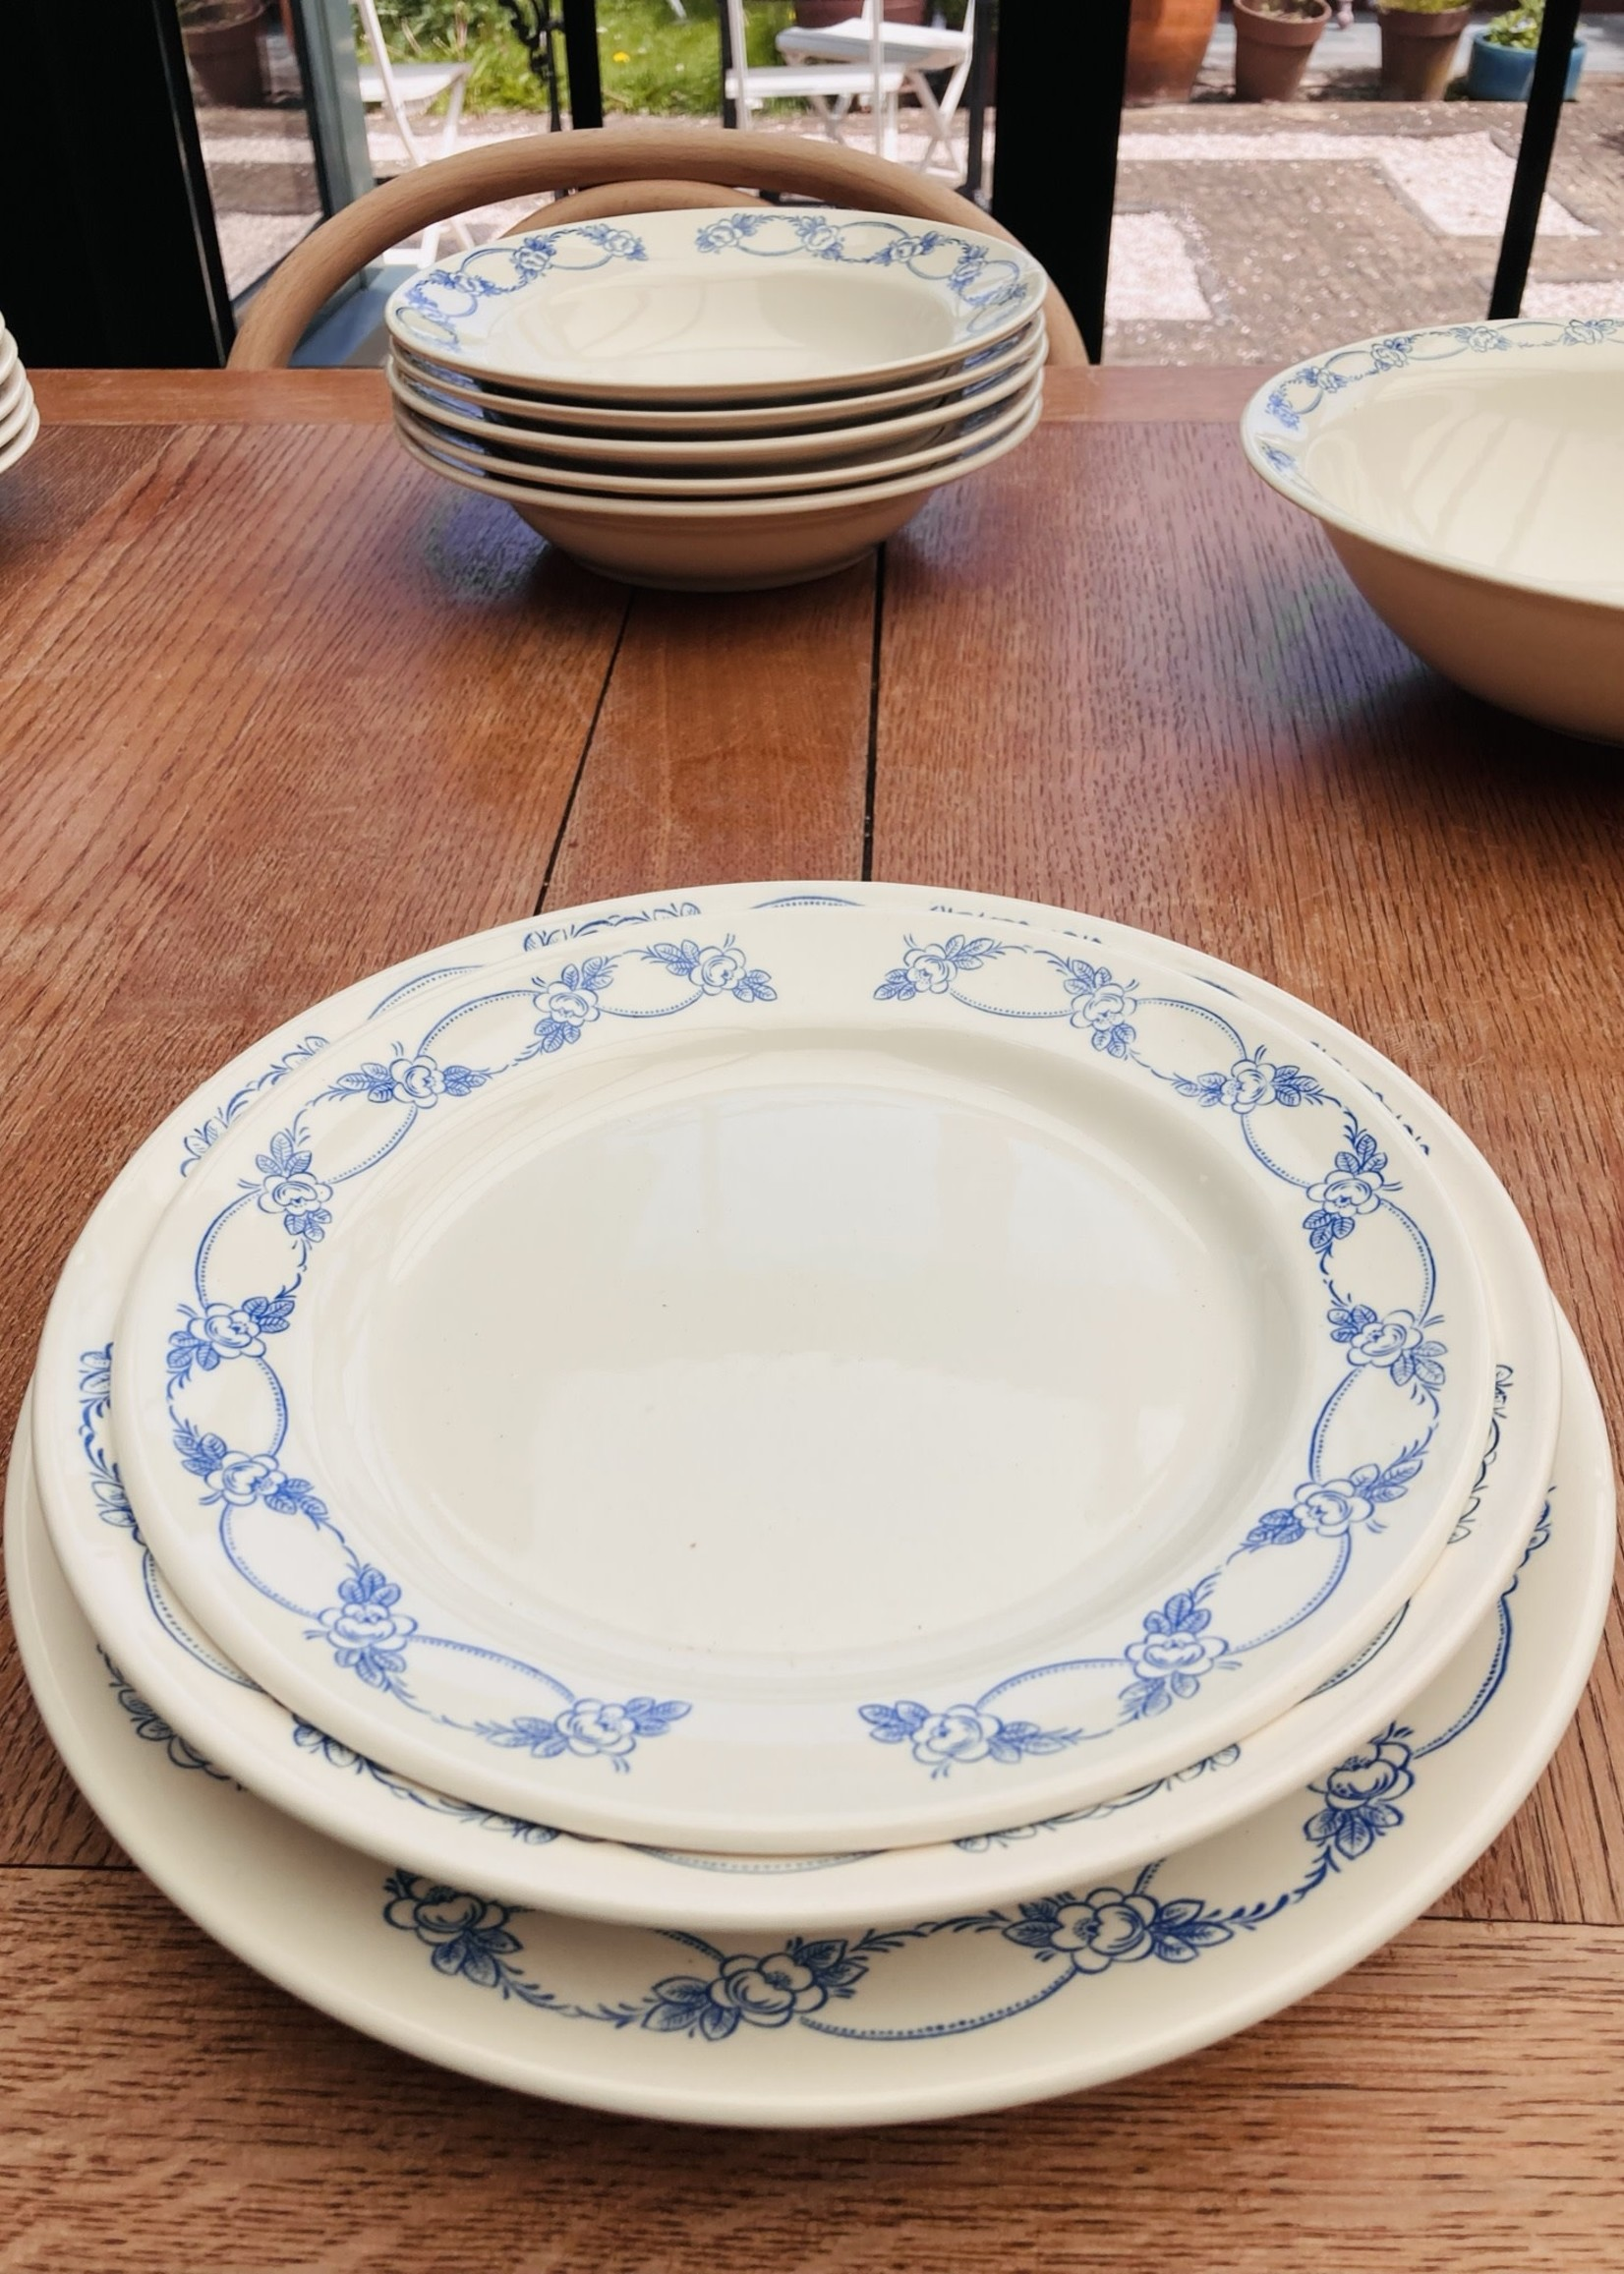 Large plates With blue flowers on border - No brand